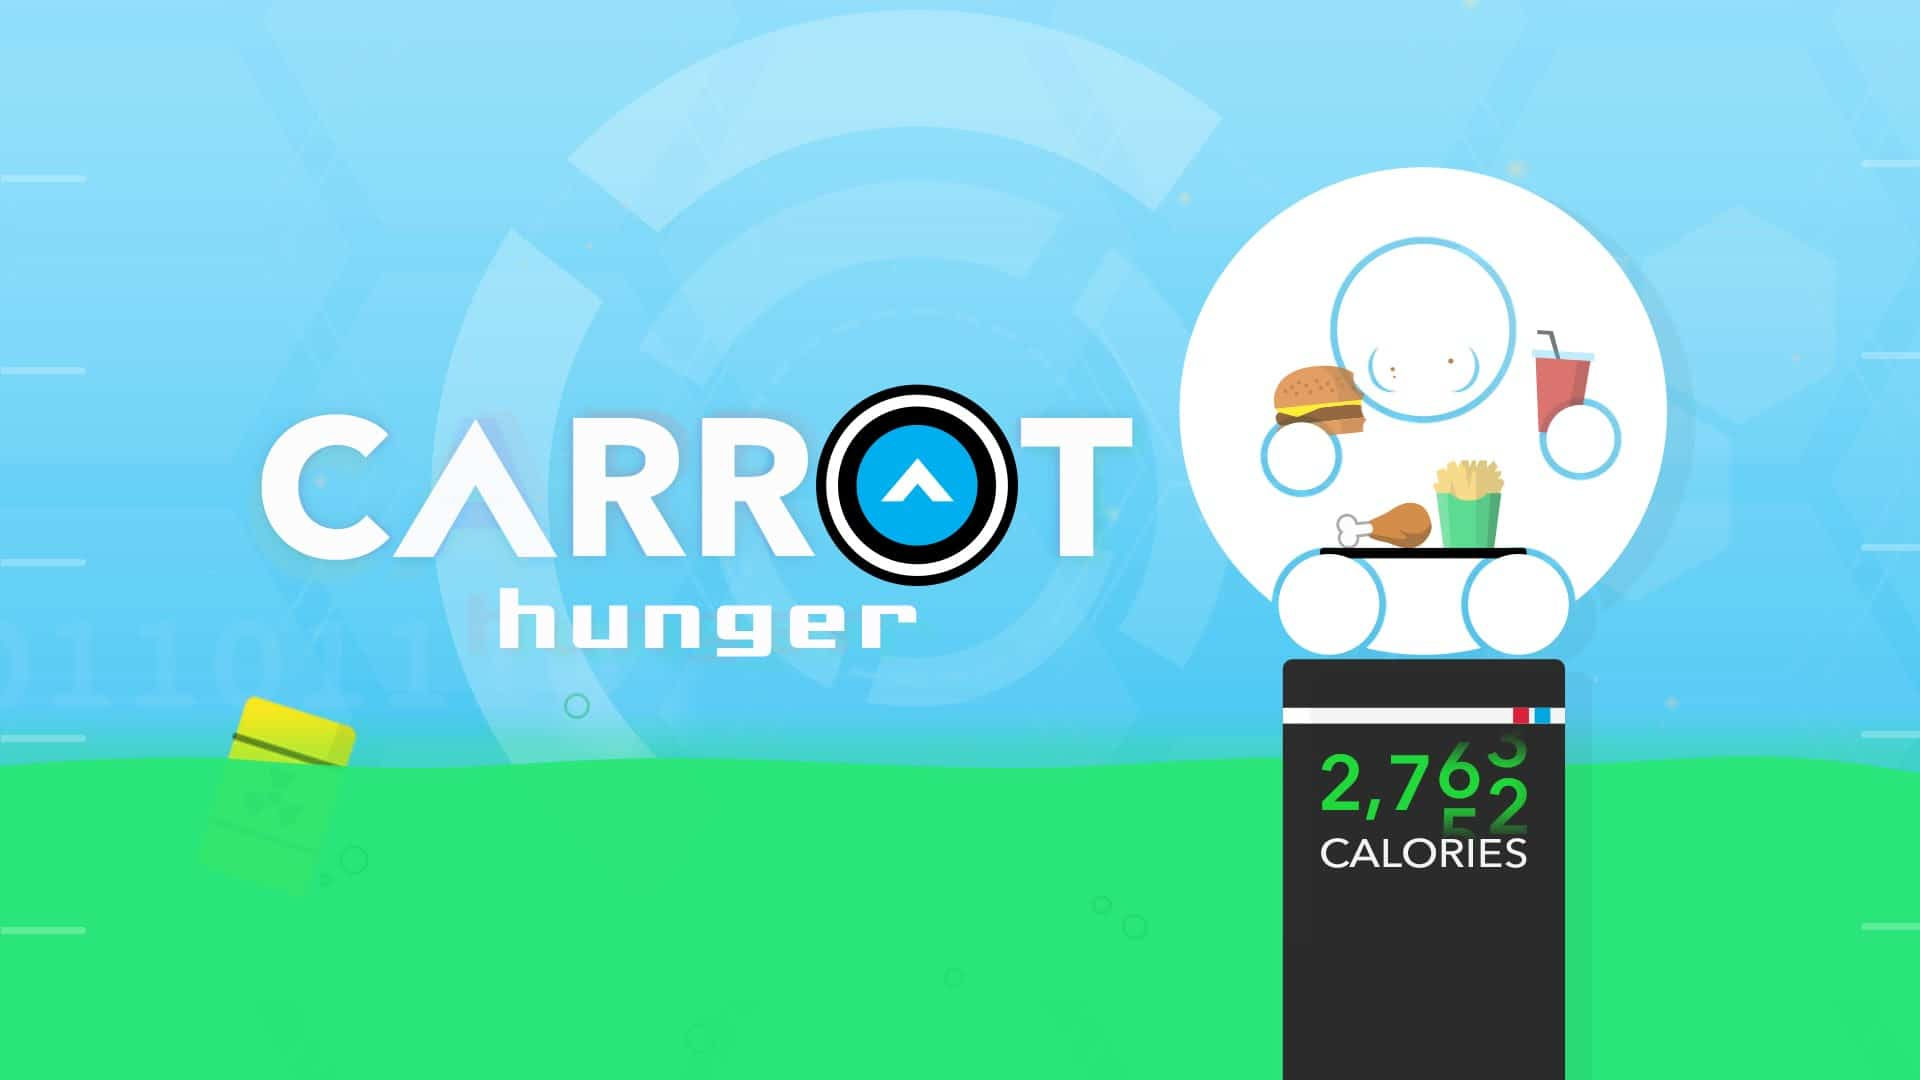 CARROT Hunger - Talking Calorie Counter